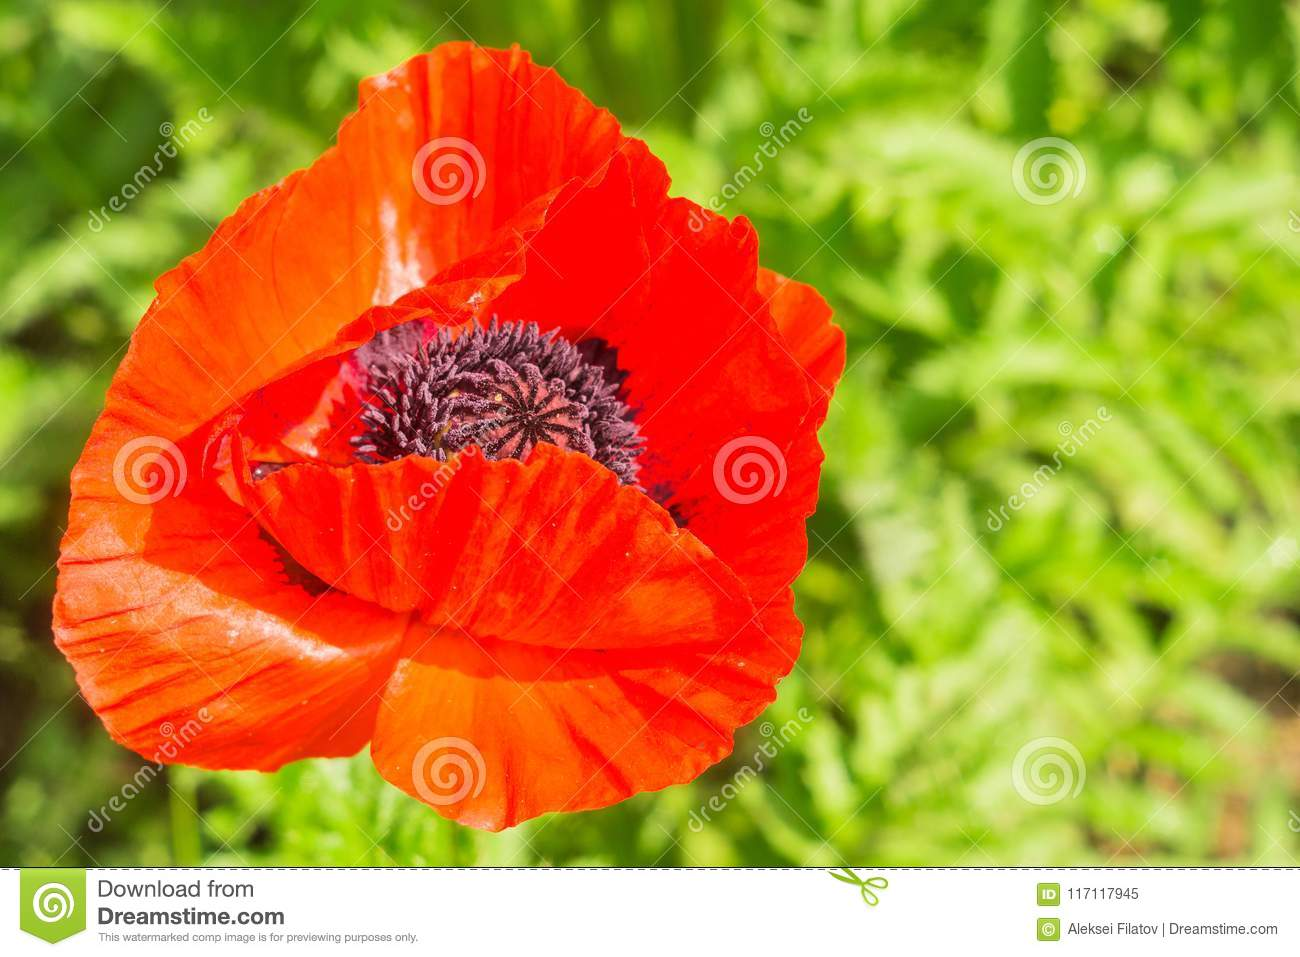 Red poppy flower stock image. Image of color, environment - 117117945